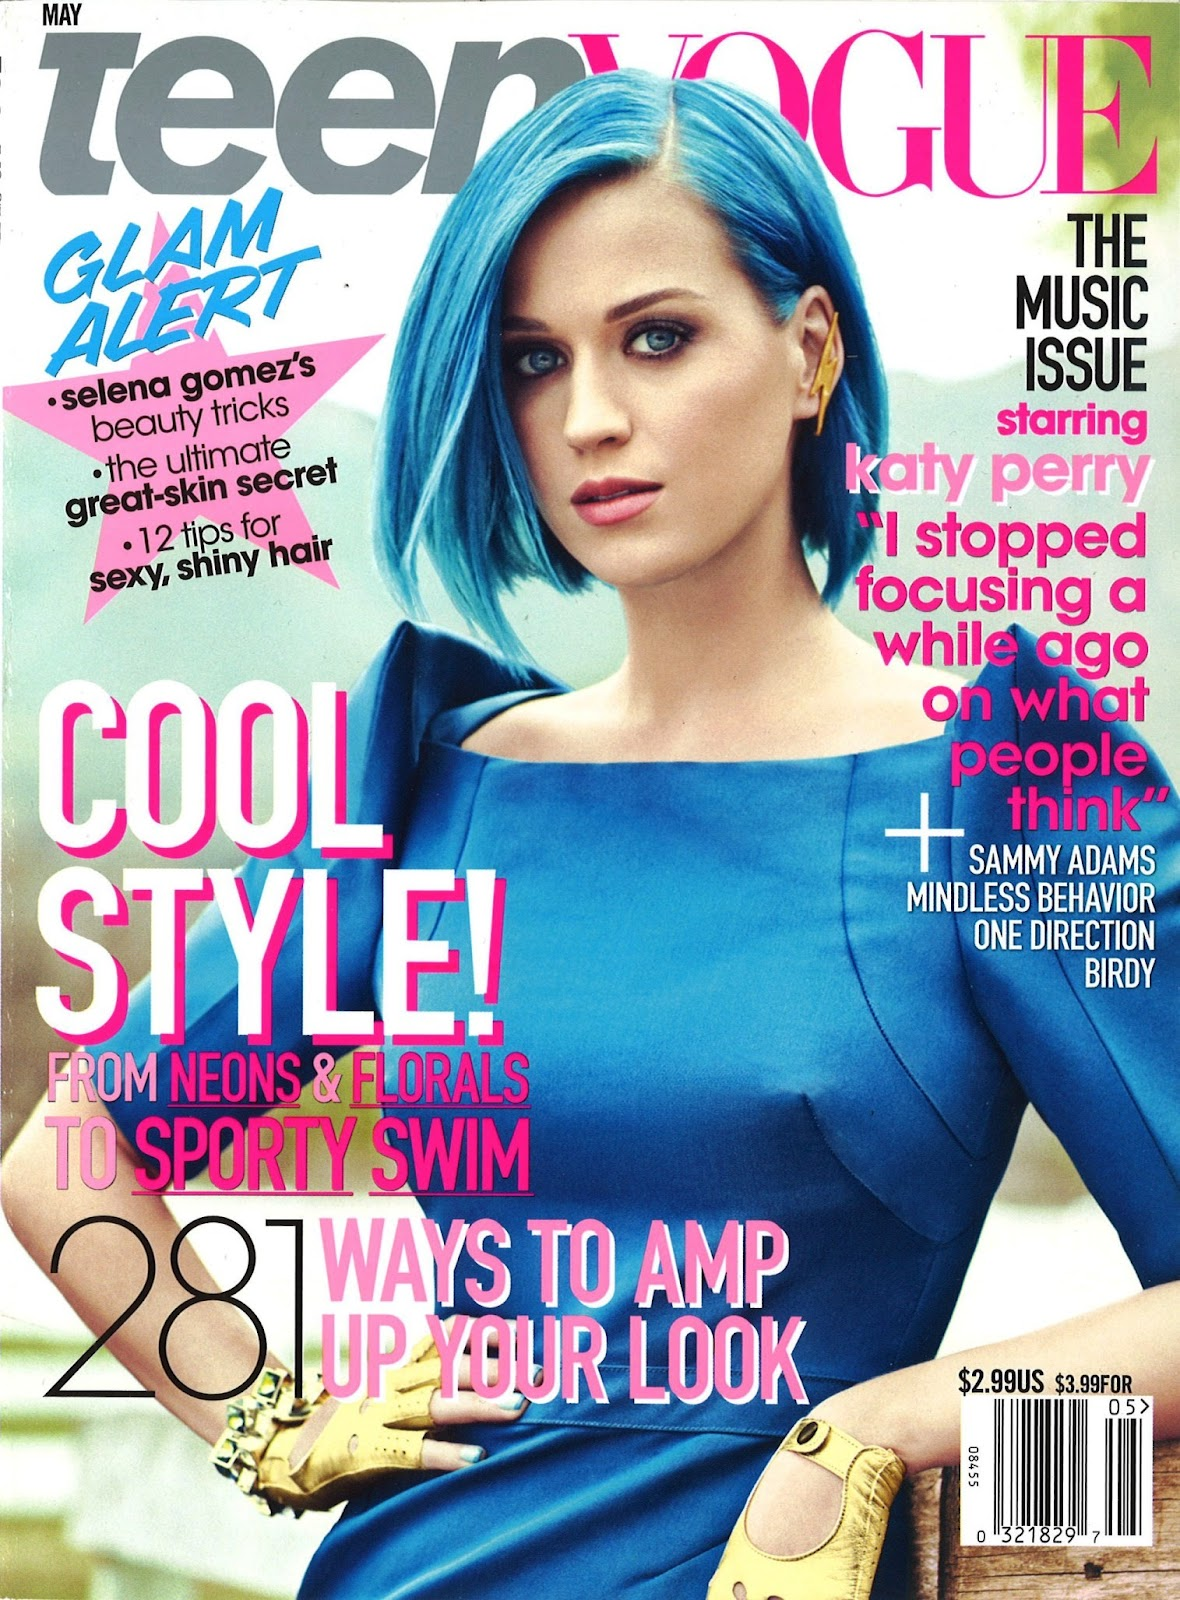 Teen Vogue Magazine Subscription Deal | 1 Year for $4.50